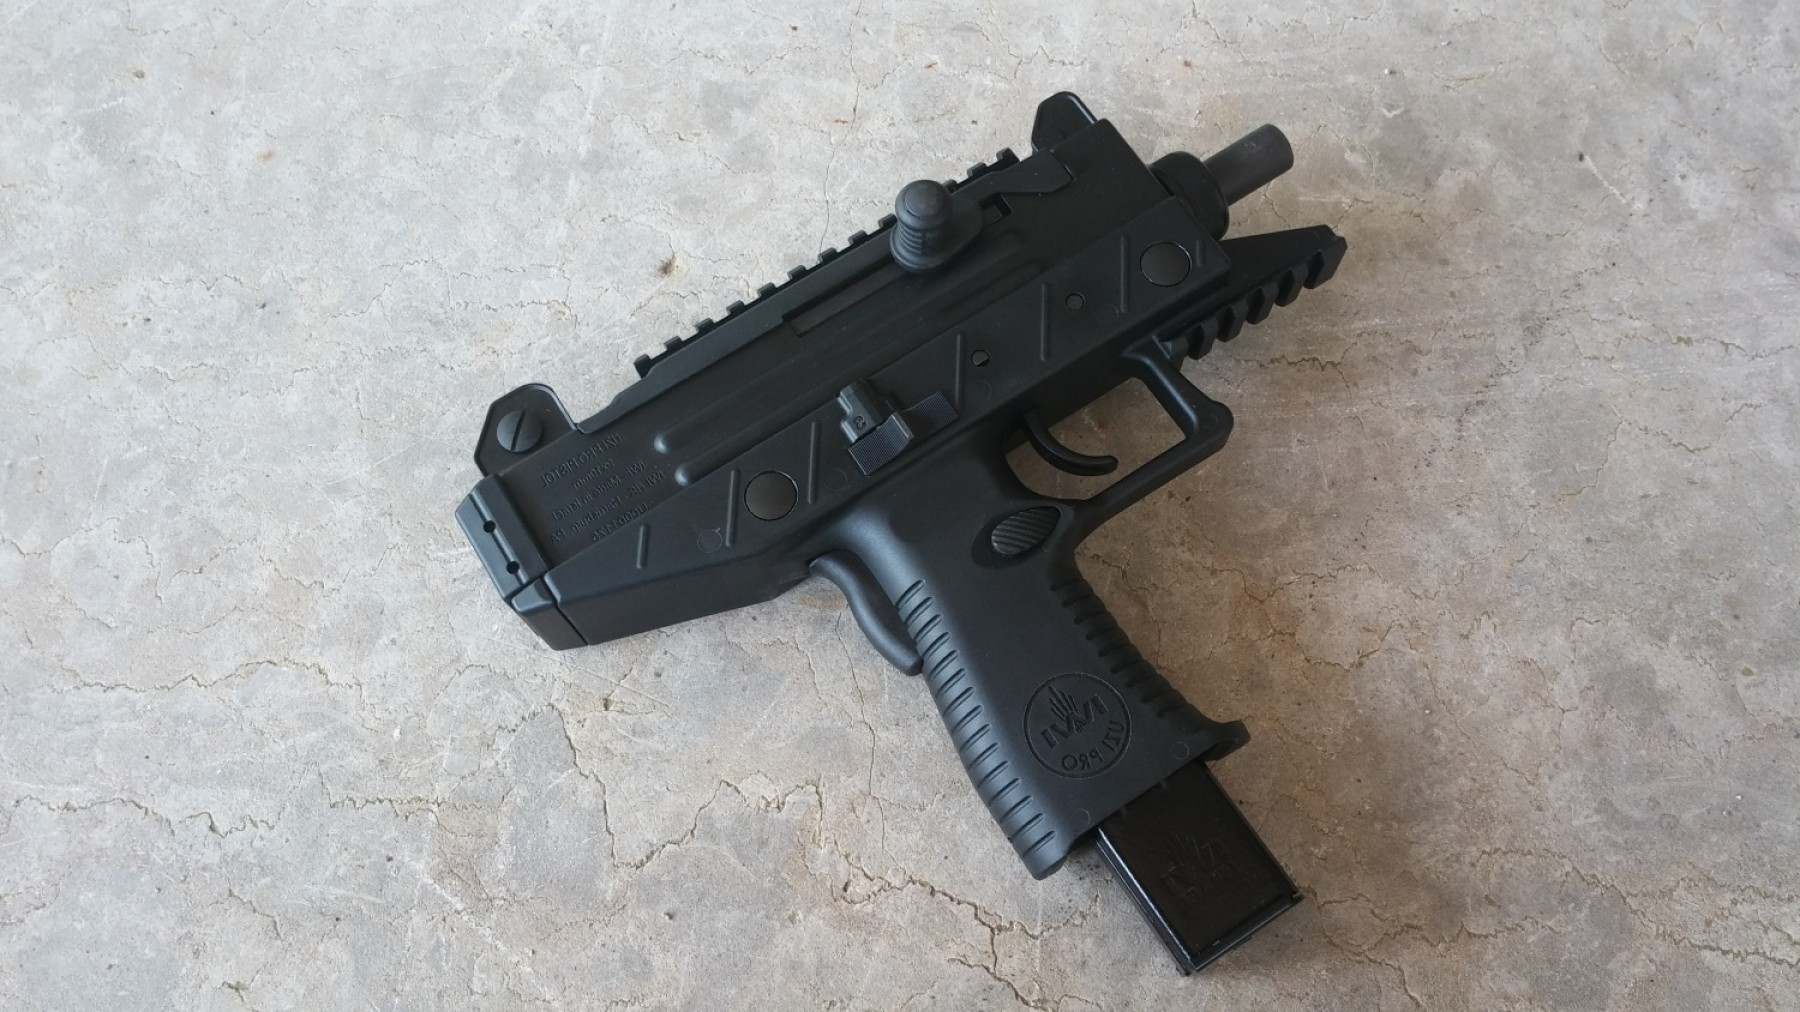 Vector Uzi Review: Gun Review The Iwi Uzi Pro